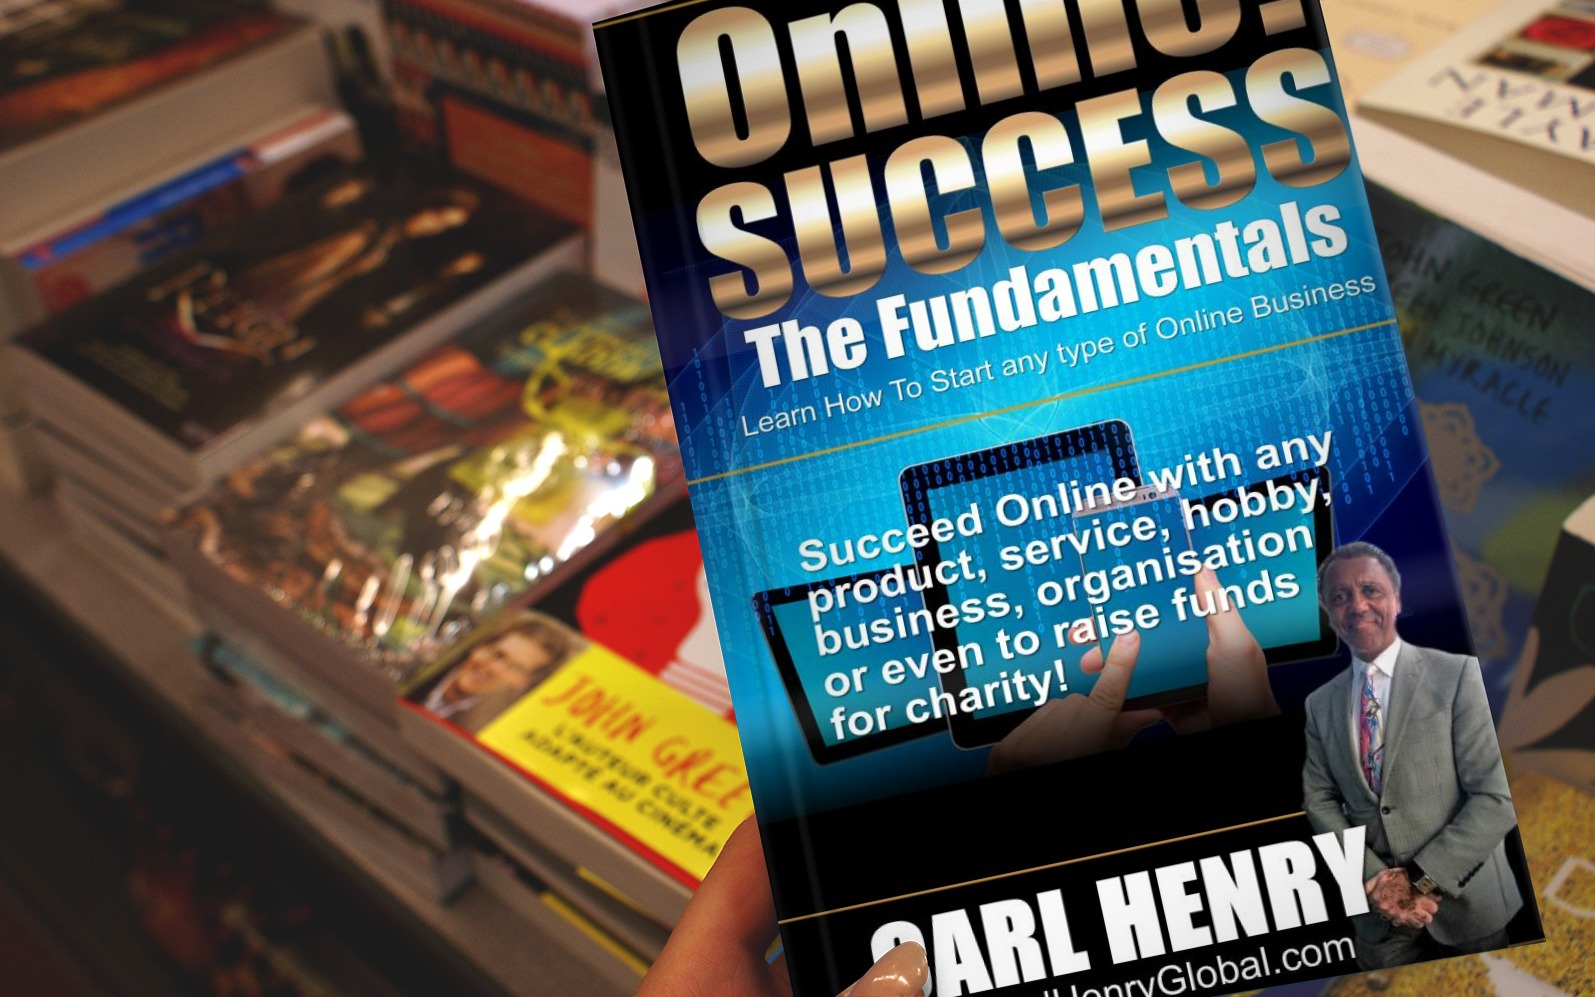 Carl-Henry-ONLINE-SUCCESS16.jpg